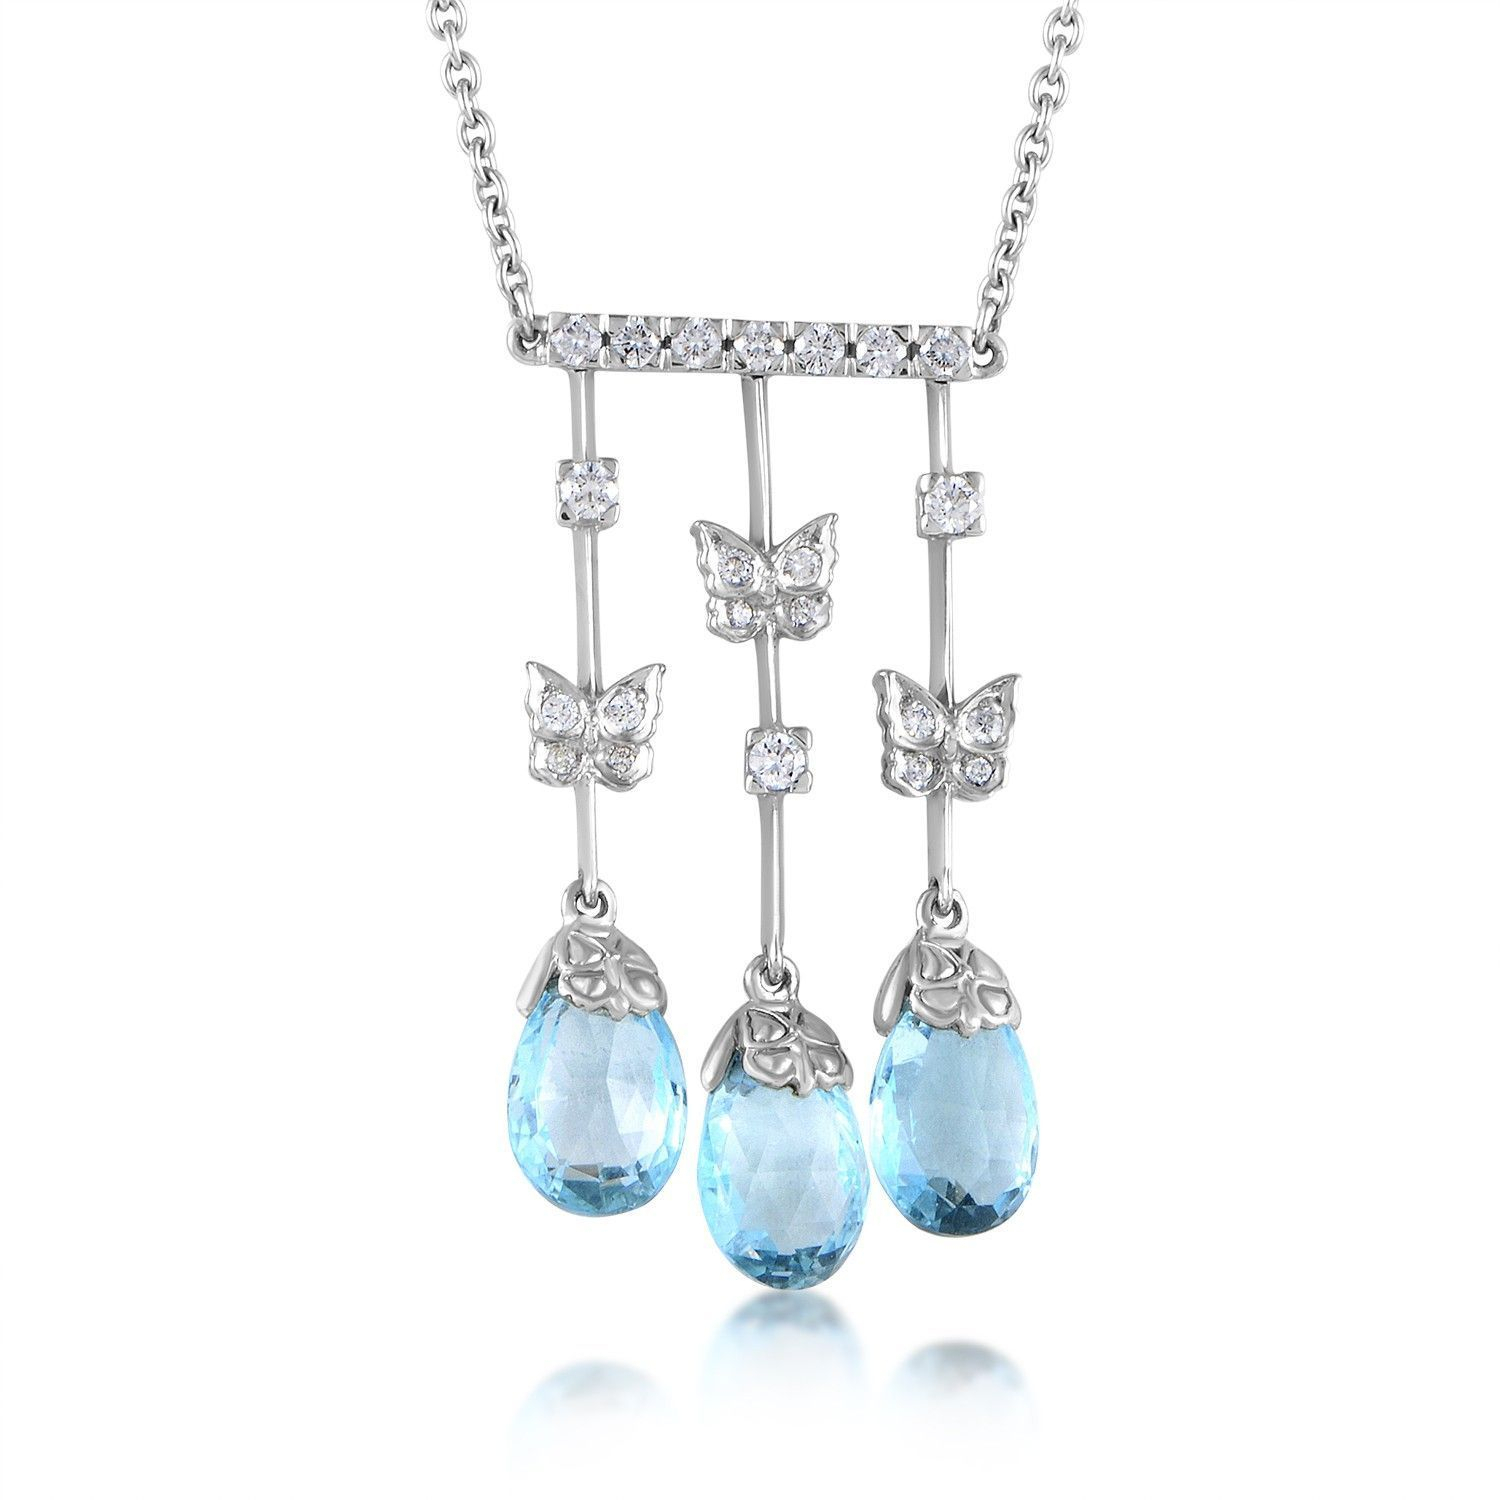 Carrera Y Carrera Baile De Mariposas 18K White Gold Diamond And Topaz  Briolette Pendant Necklace Intended For 2020 Sparkling Butterfly Y  Necklaces (Gallery 21 of 25)